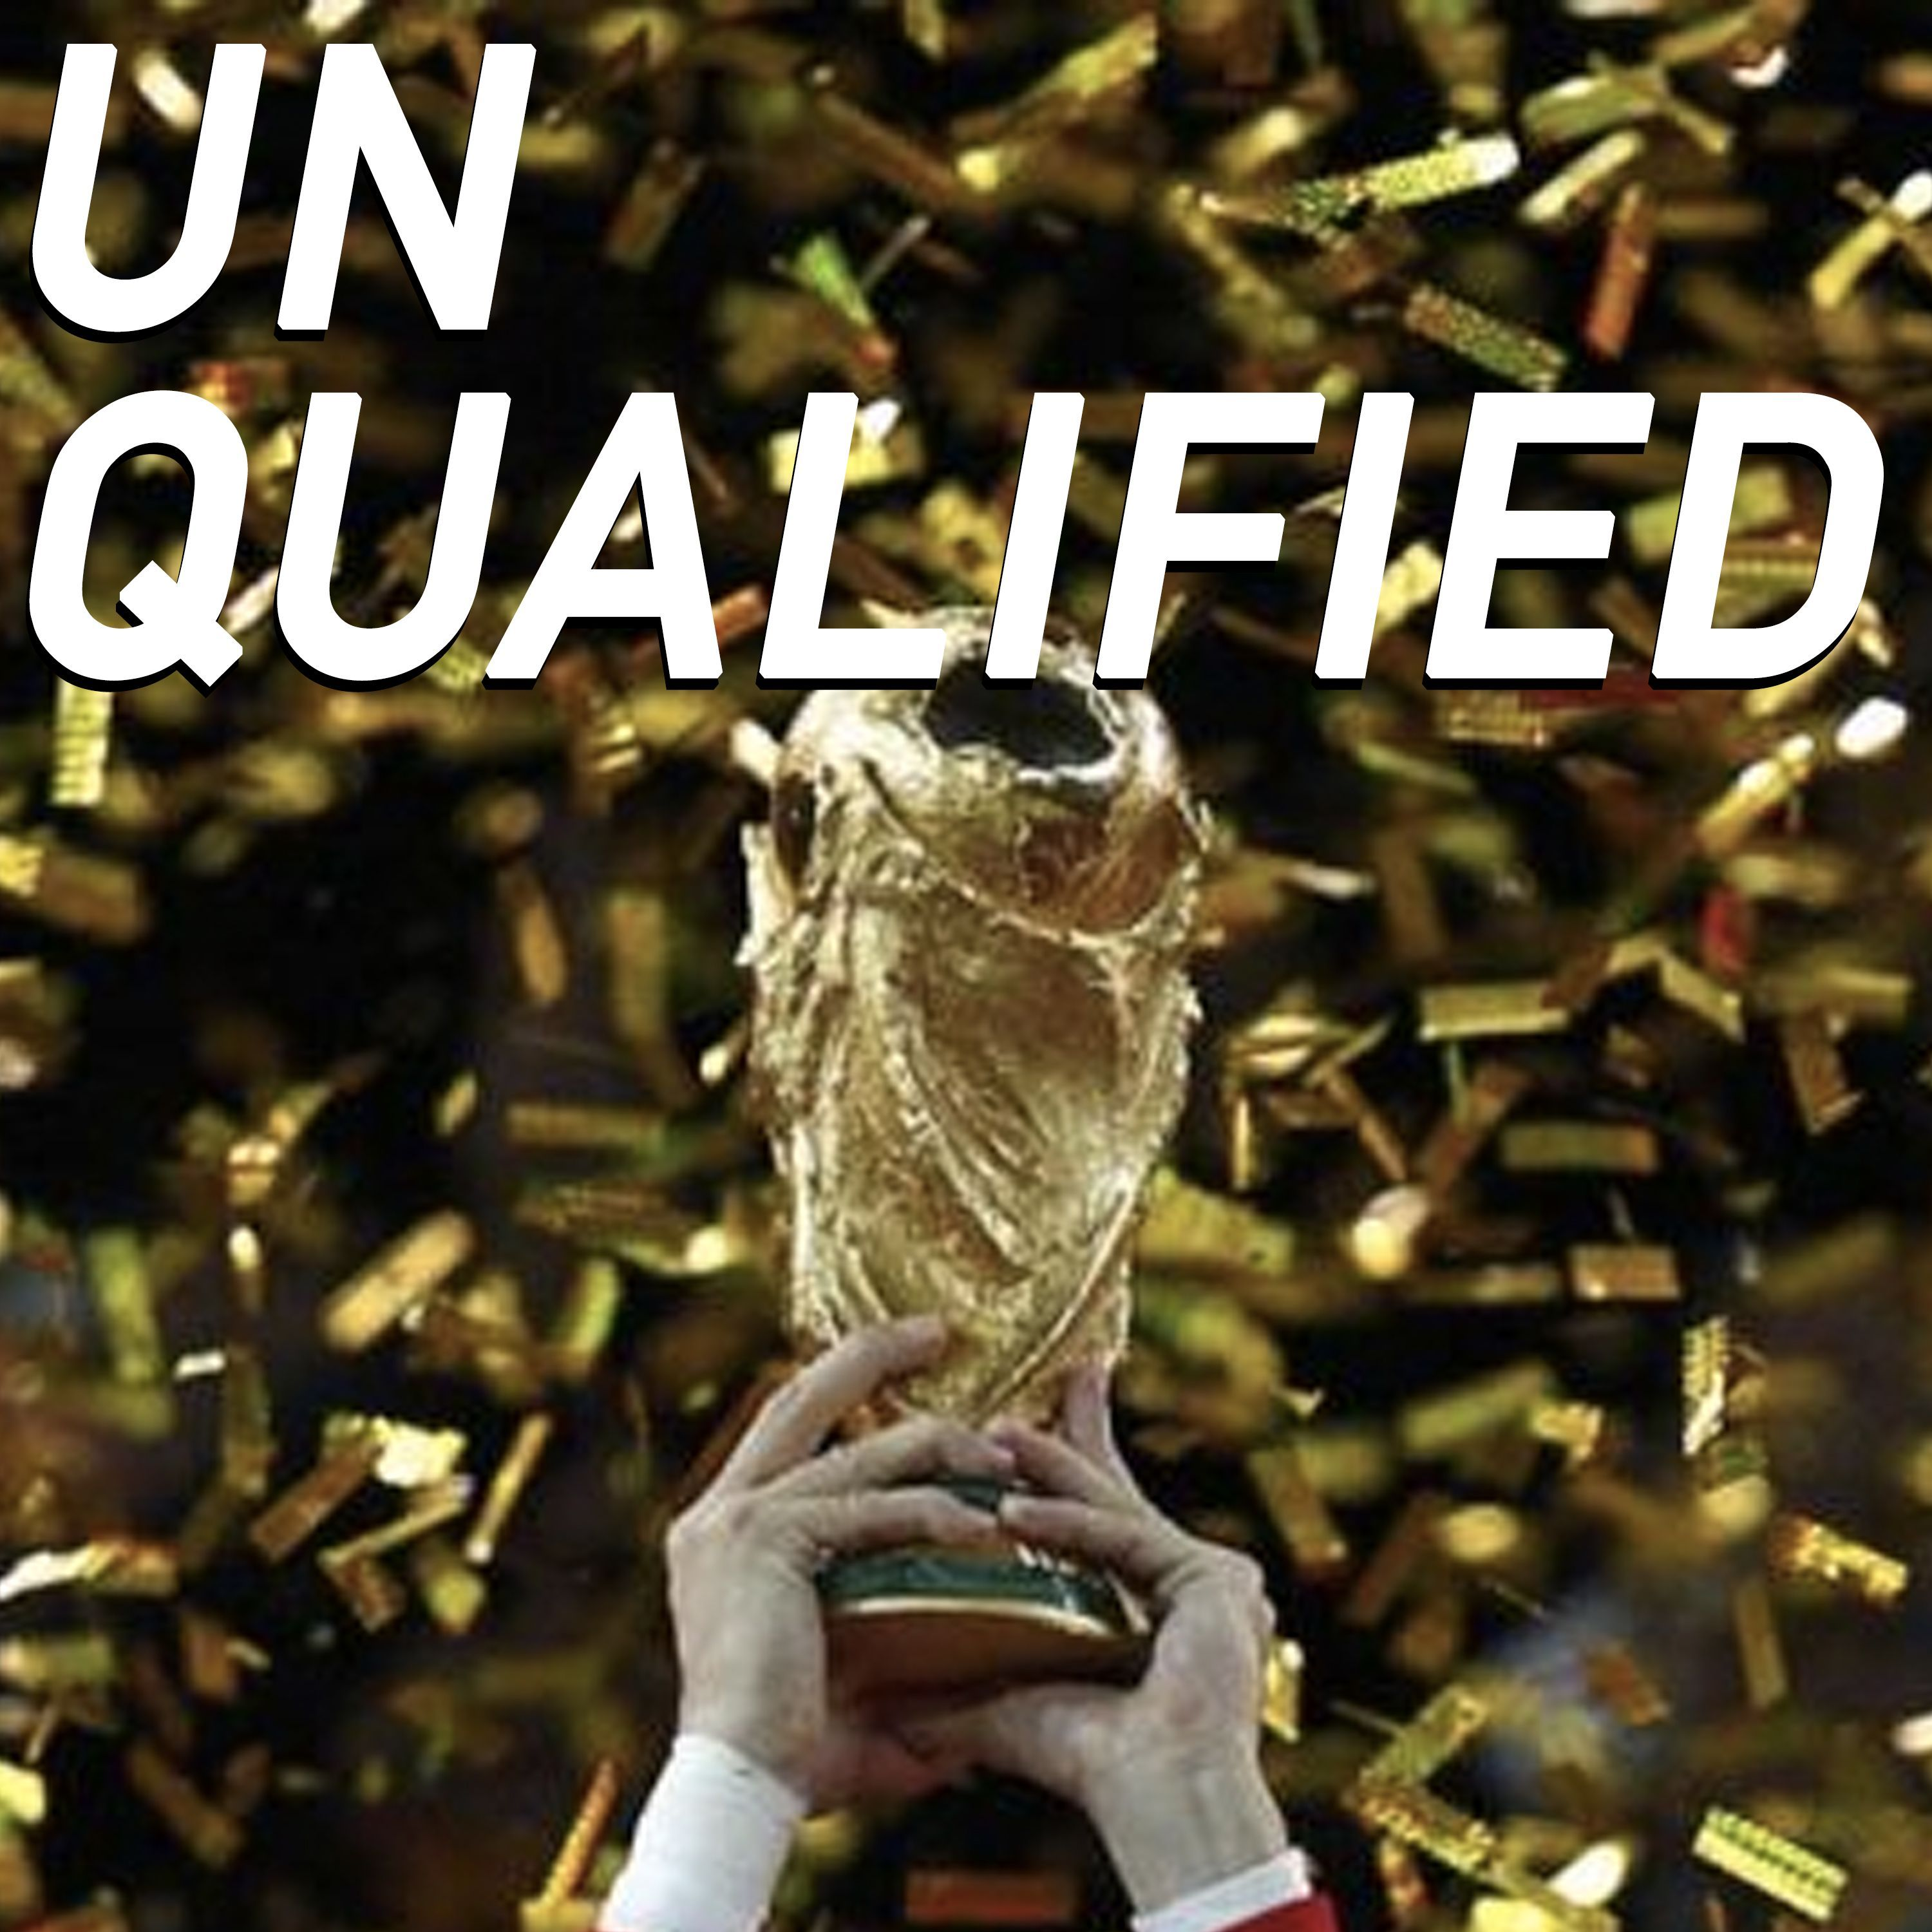 Unqualified: An American Soccer Podcast - Episode 4